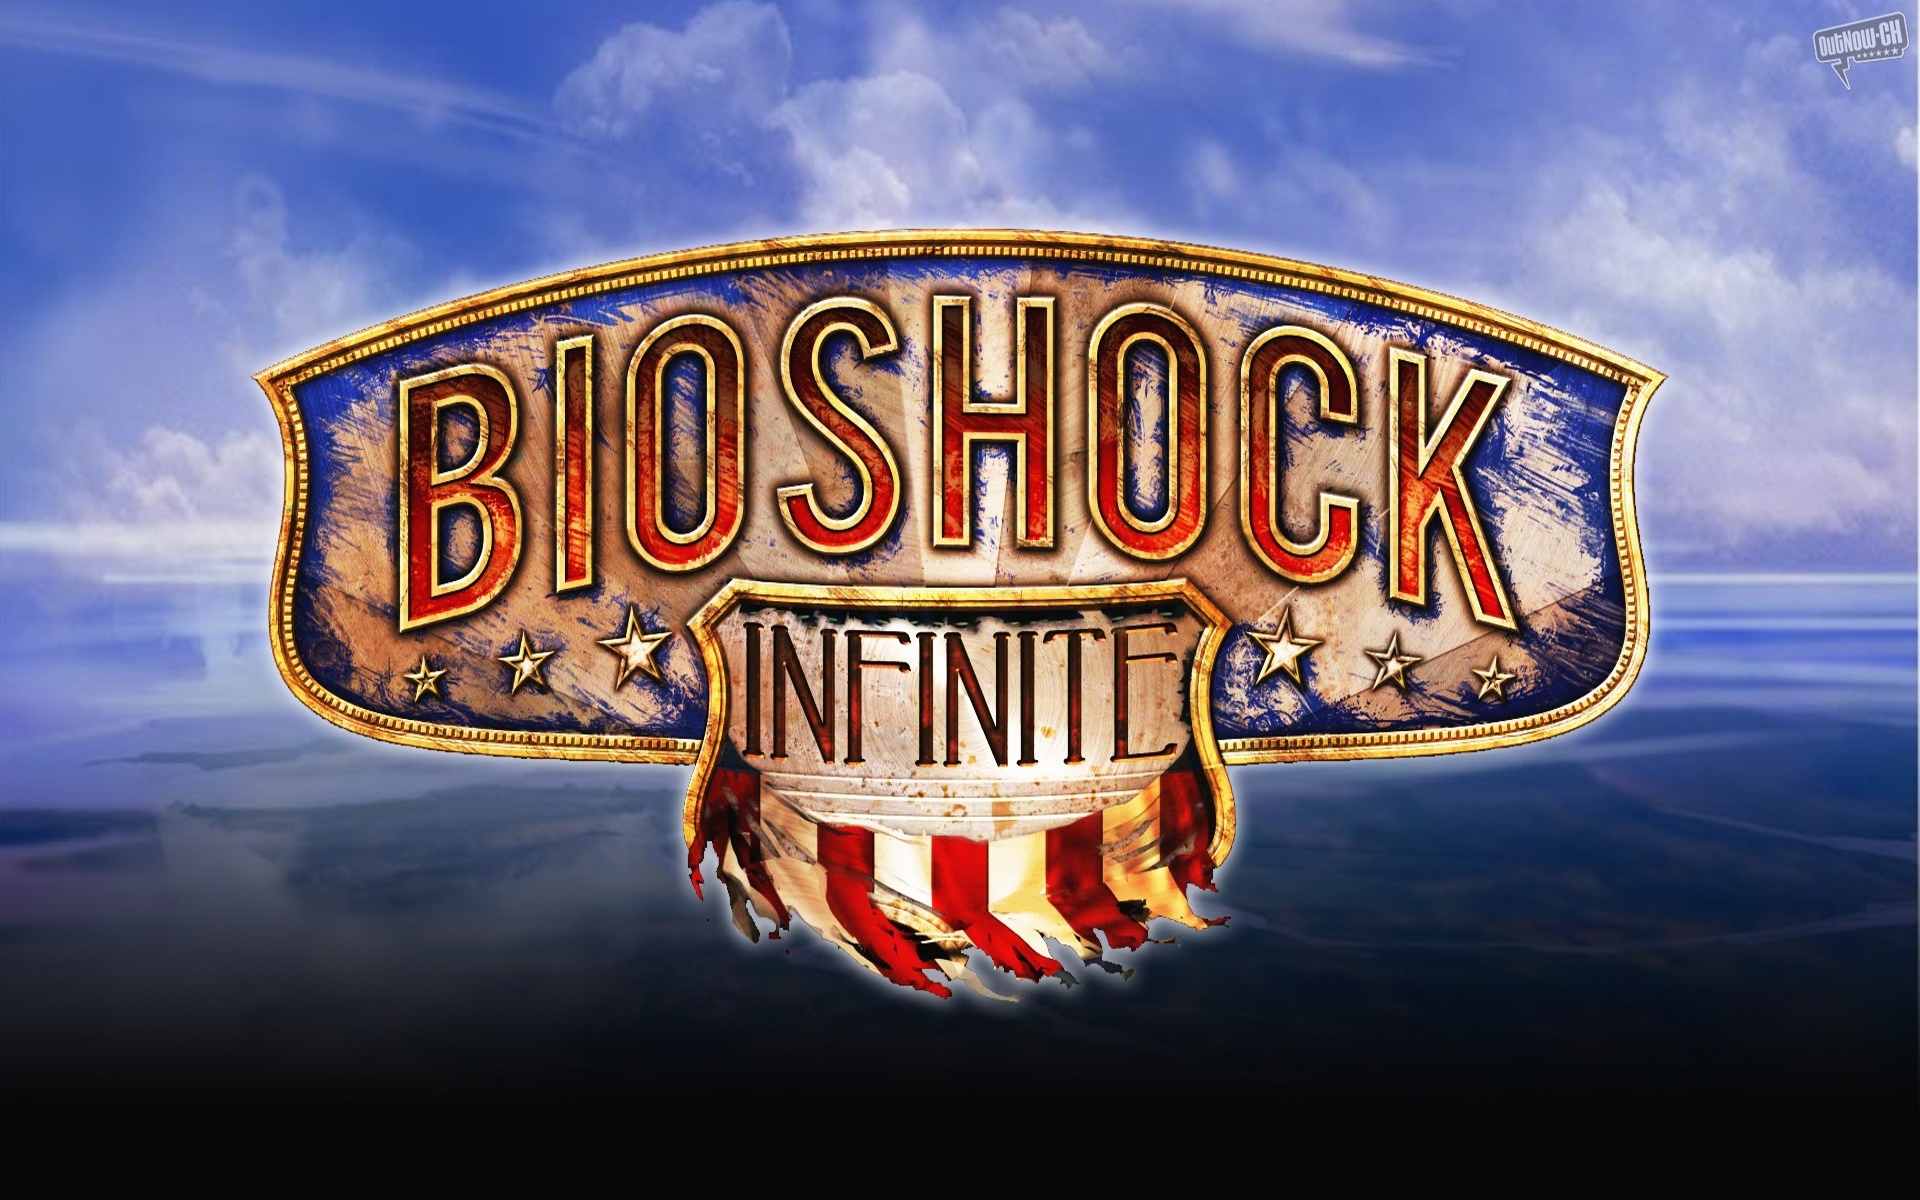 My Growing Excitement for Bioshock Infinite